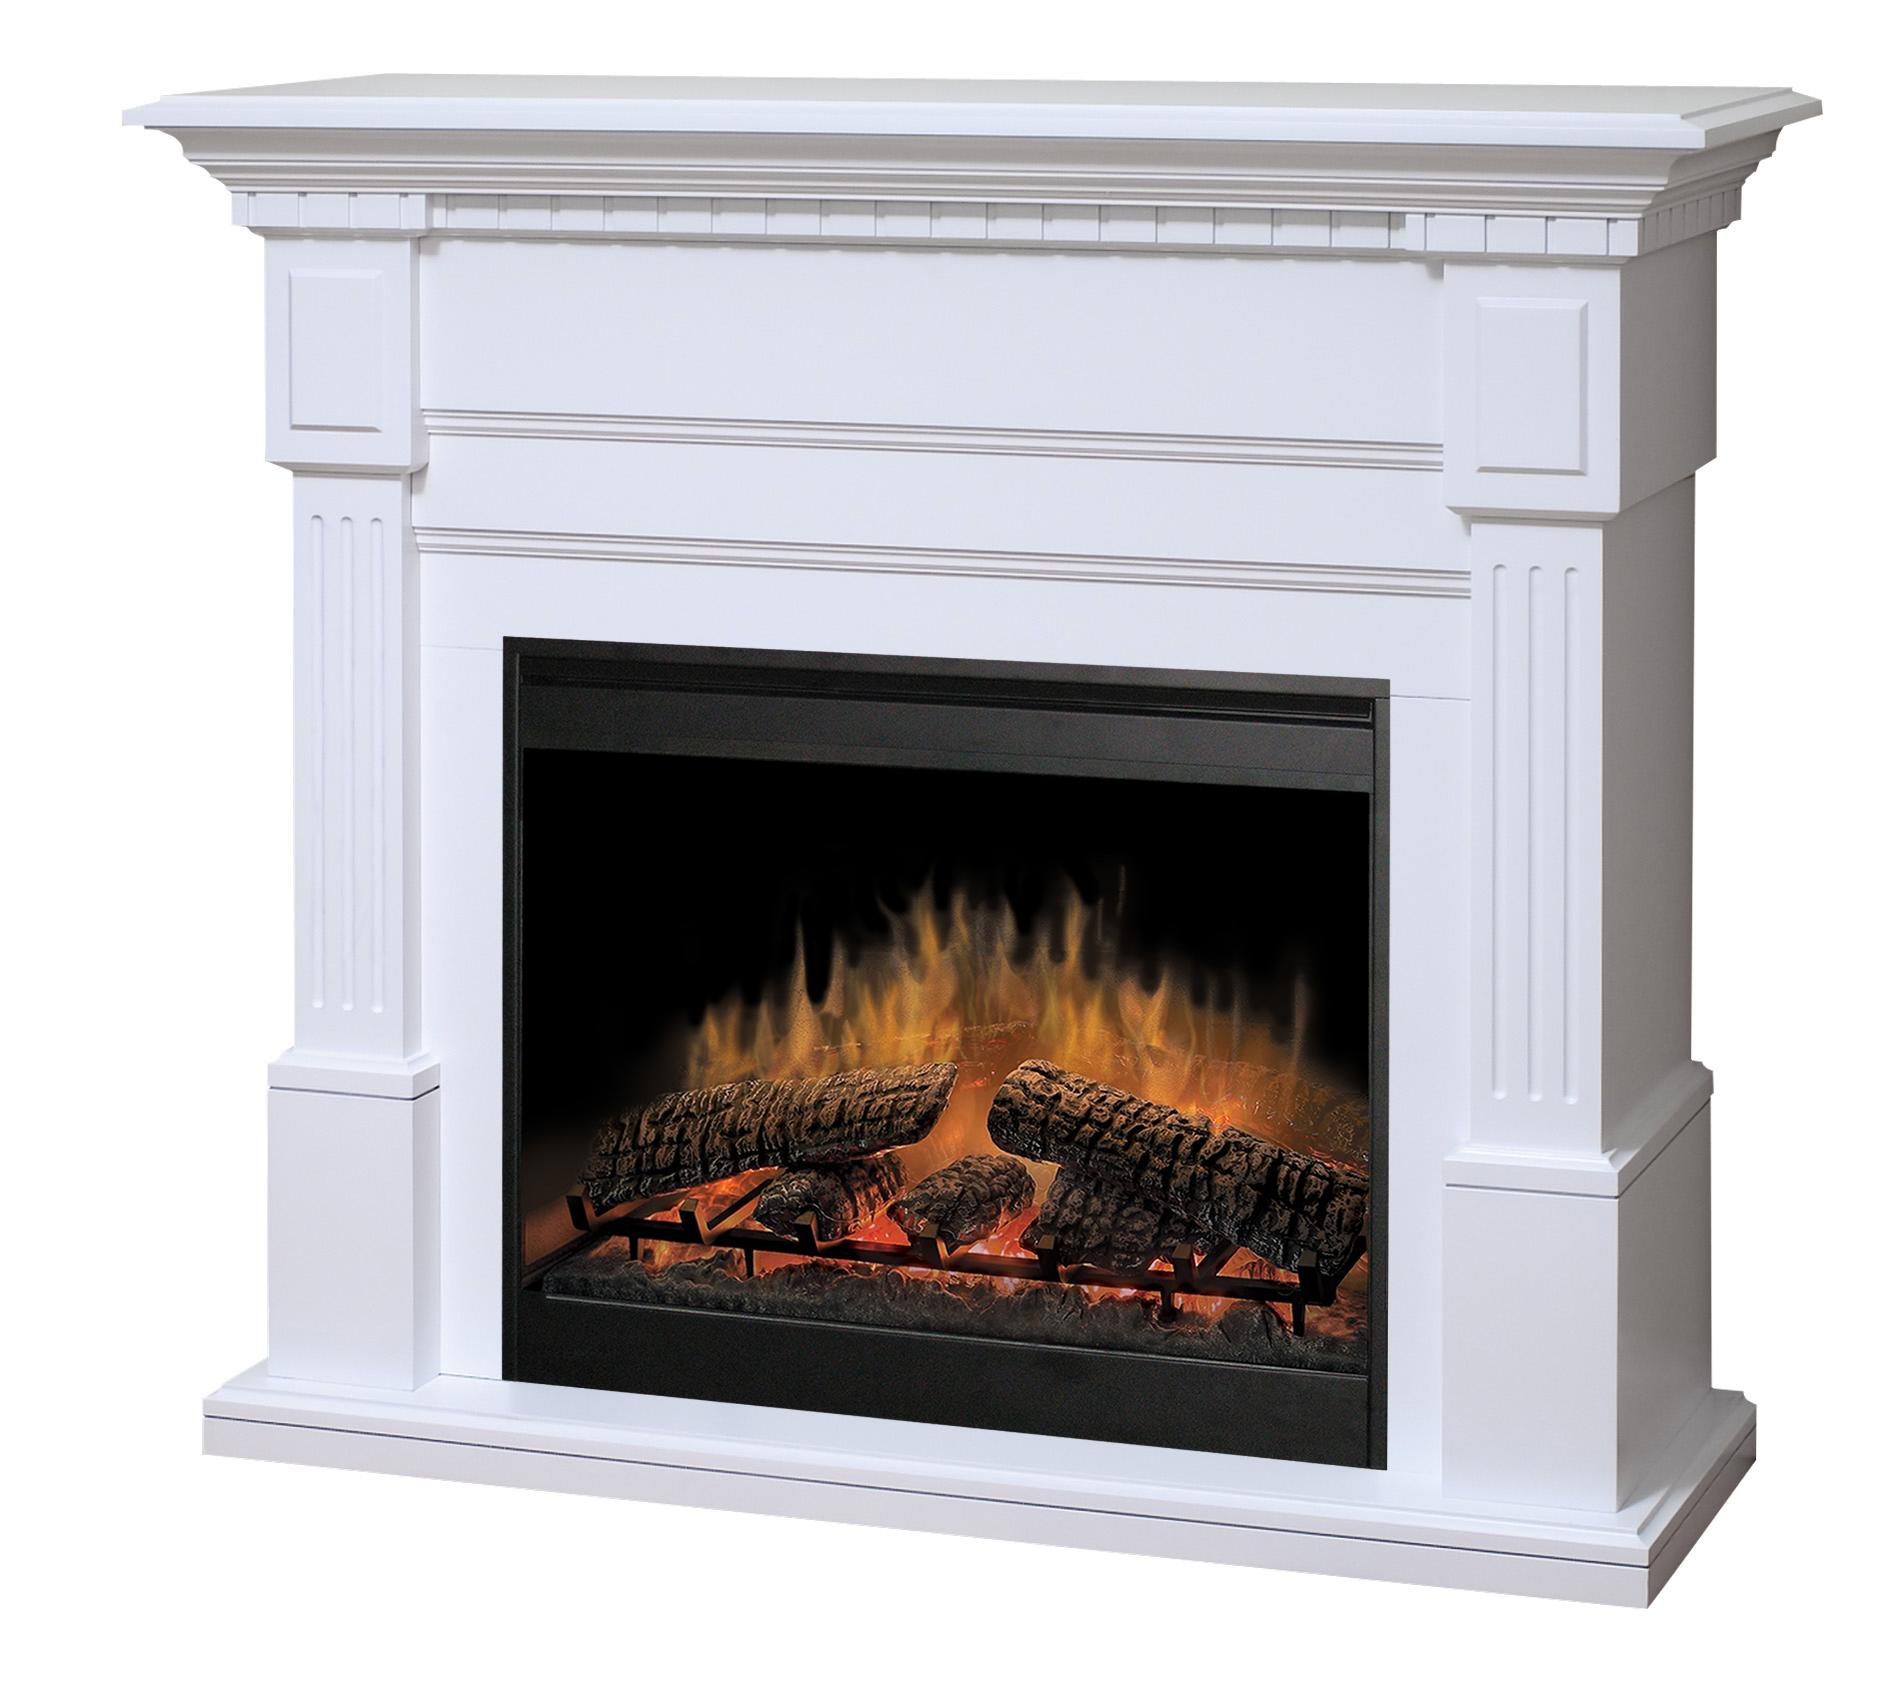 place option decoration white fireplace fire craftsmanbb new design electric mantel fireplaces